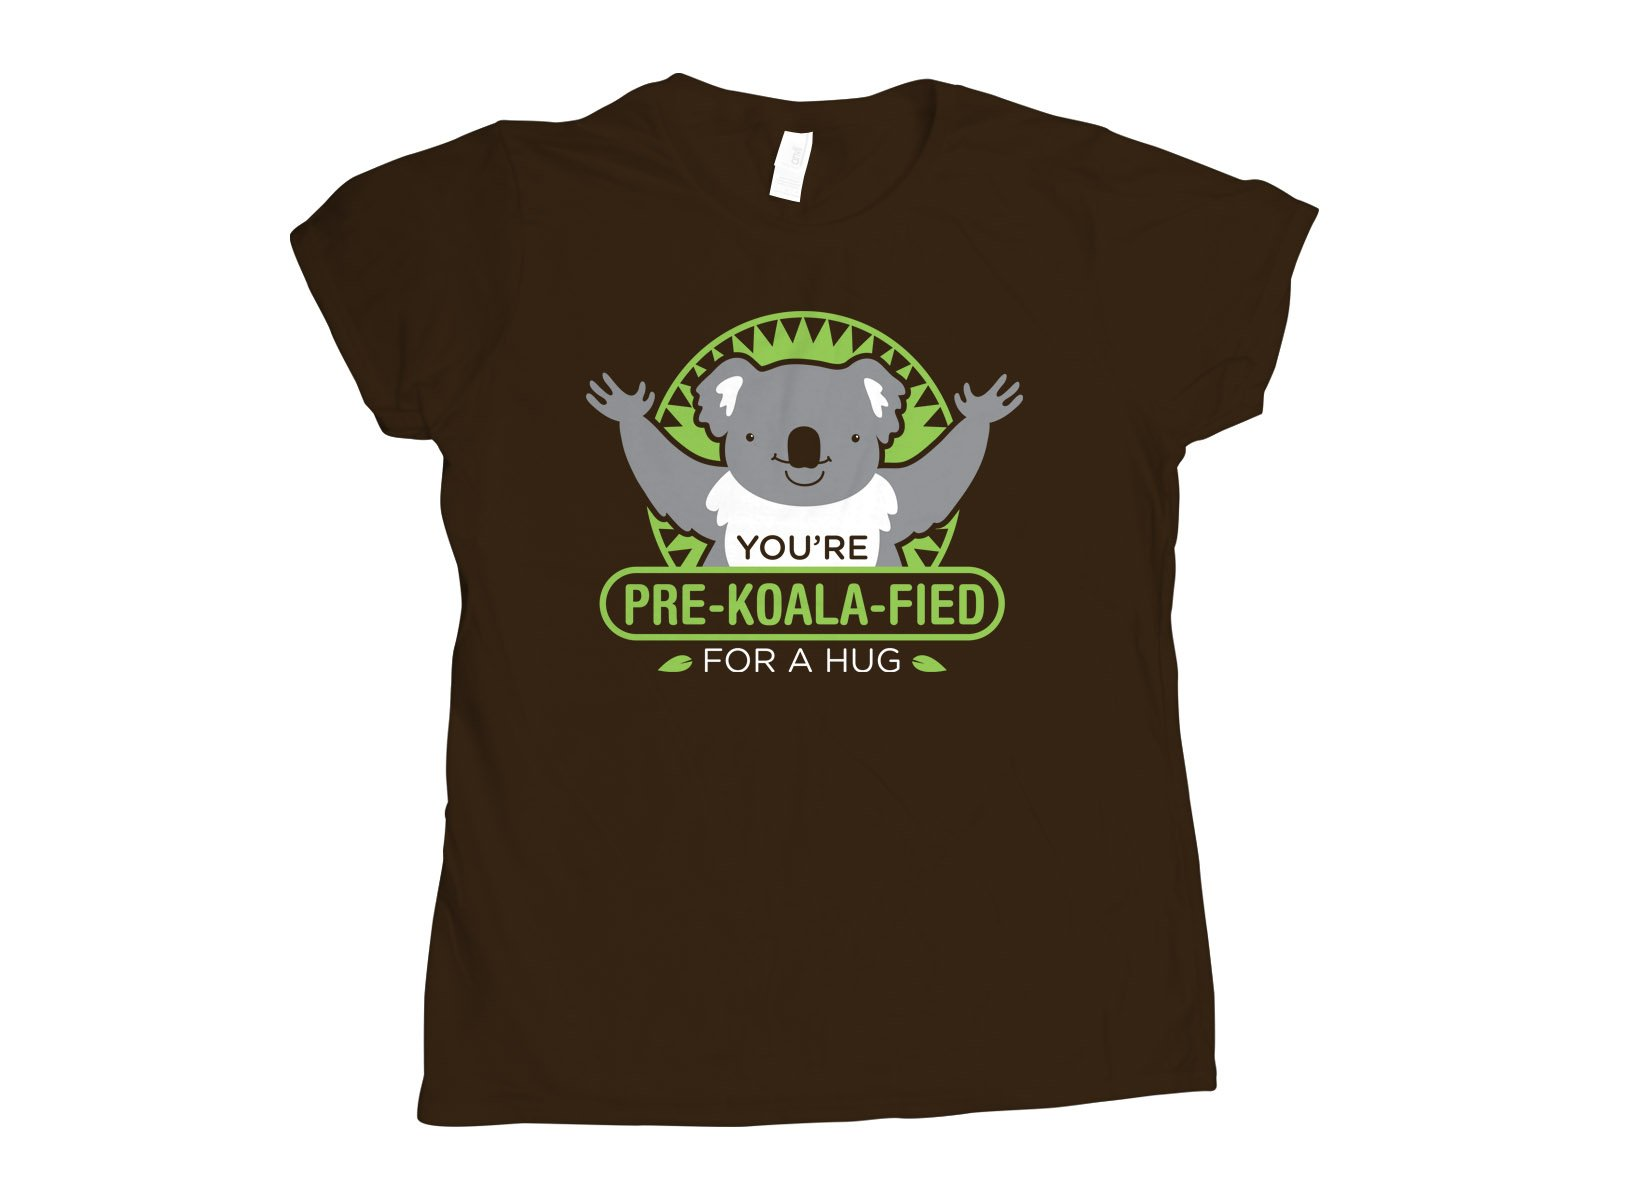 You're Pre-Koala-Fied For A Hug on Womens T-Shirt